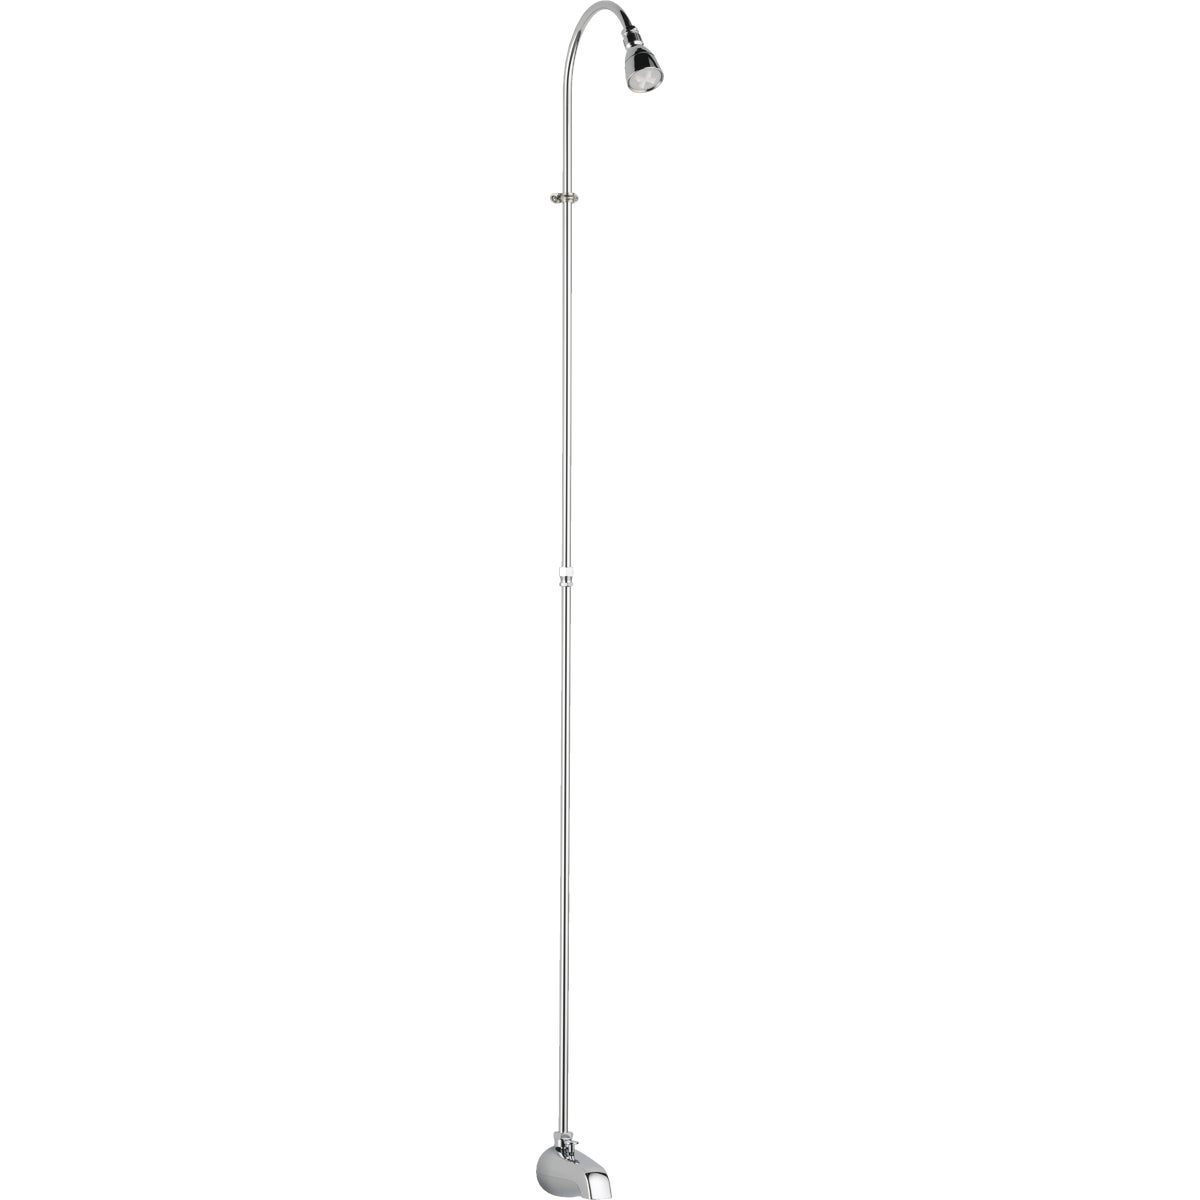 Alsons Corp. STANDARD ADD-ON-SHOWER PS2566